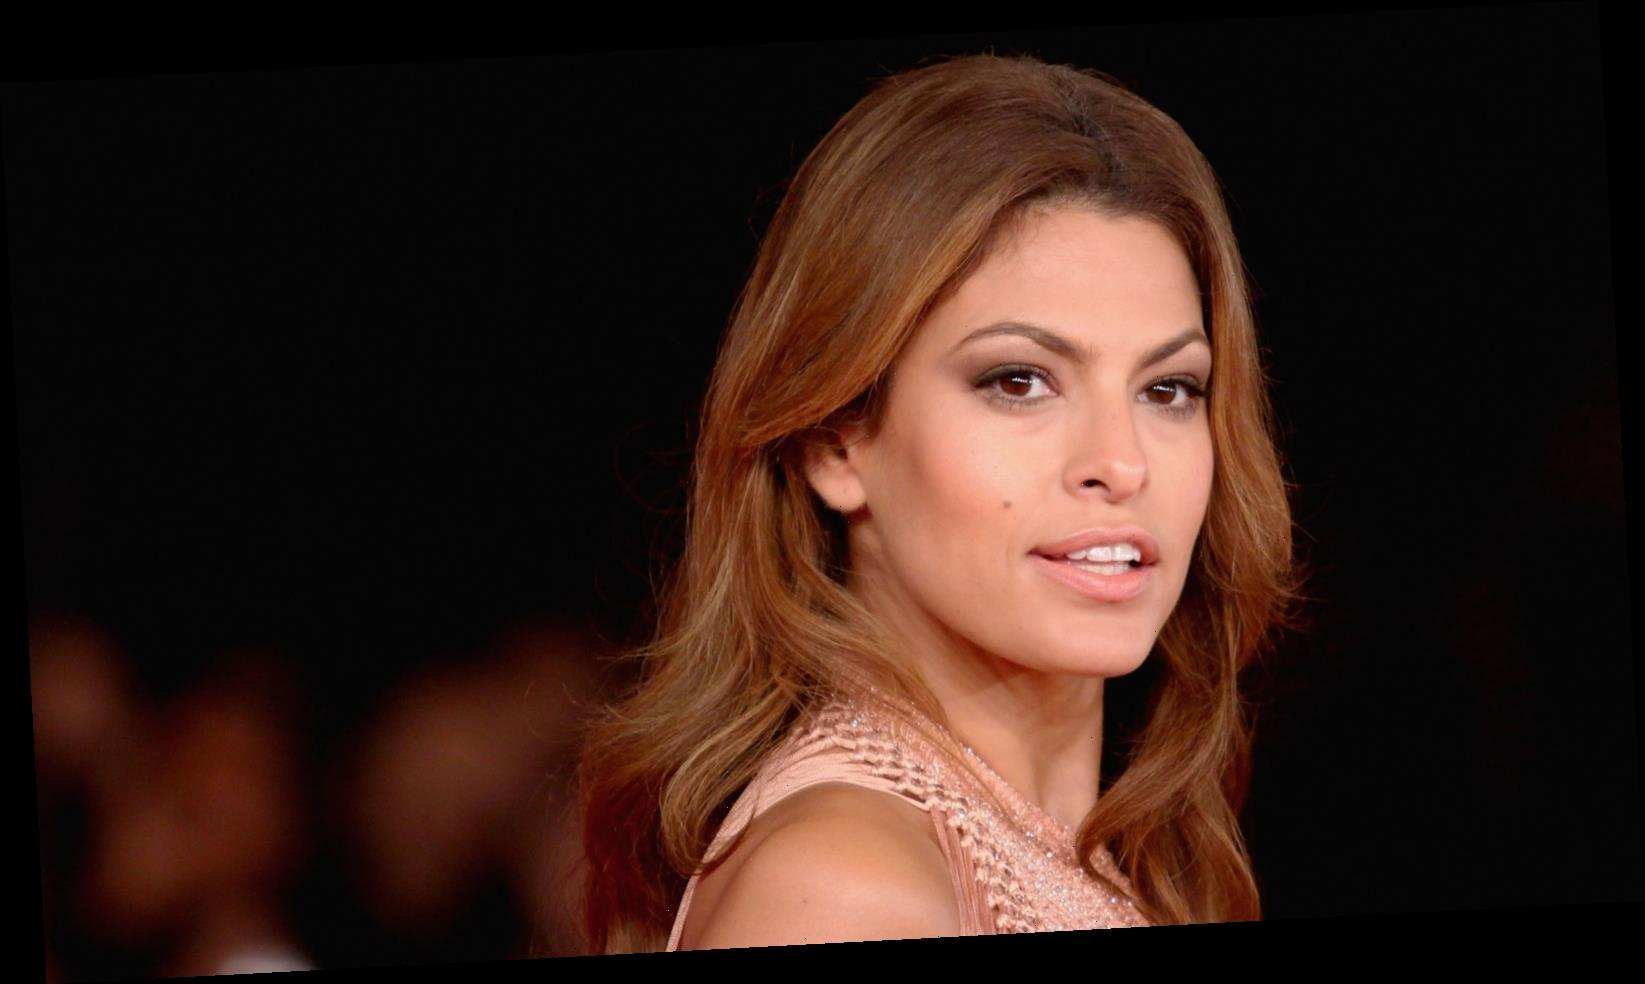 Why Eva Mendes Has Everyone Talking About Her Relationship